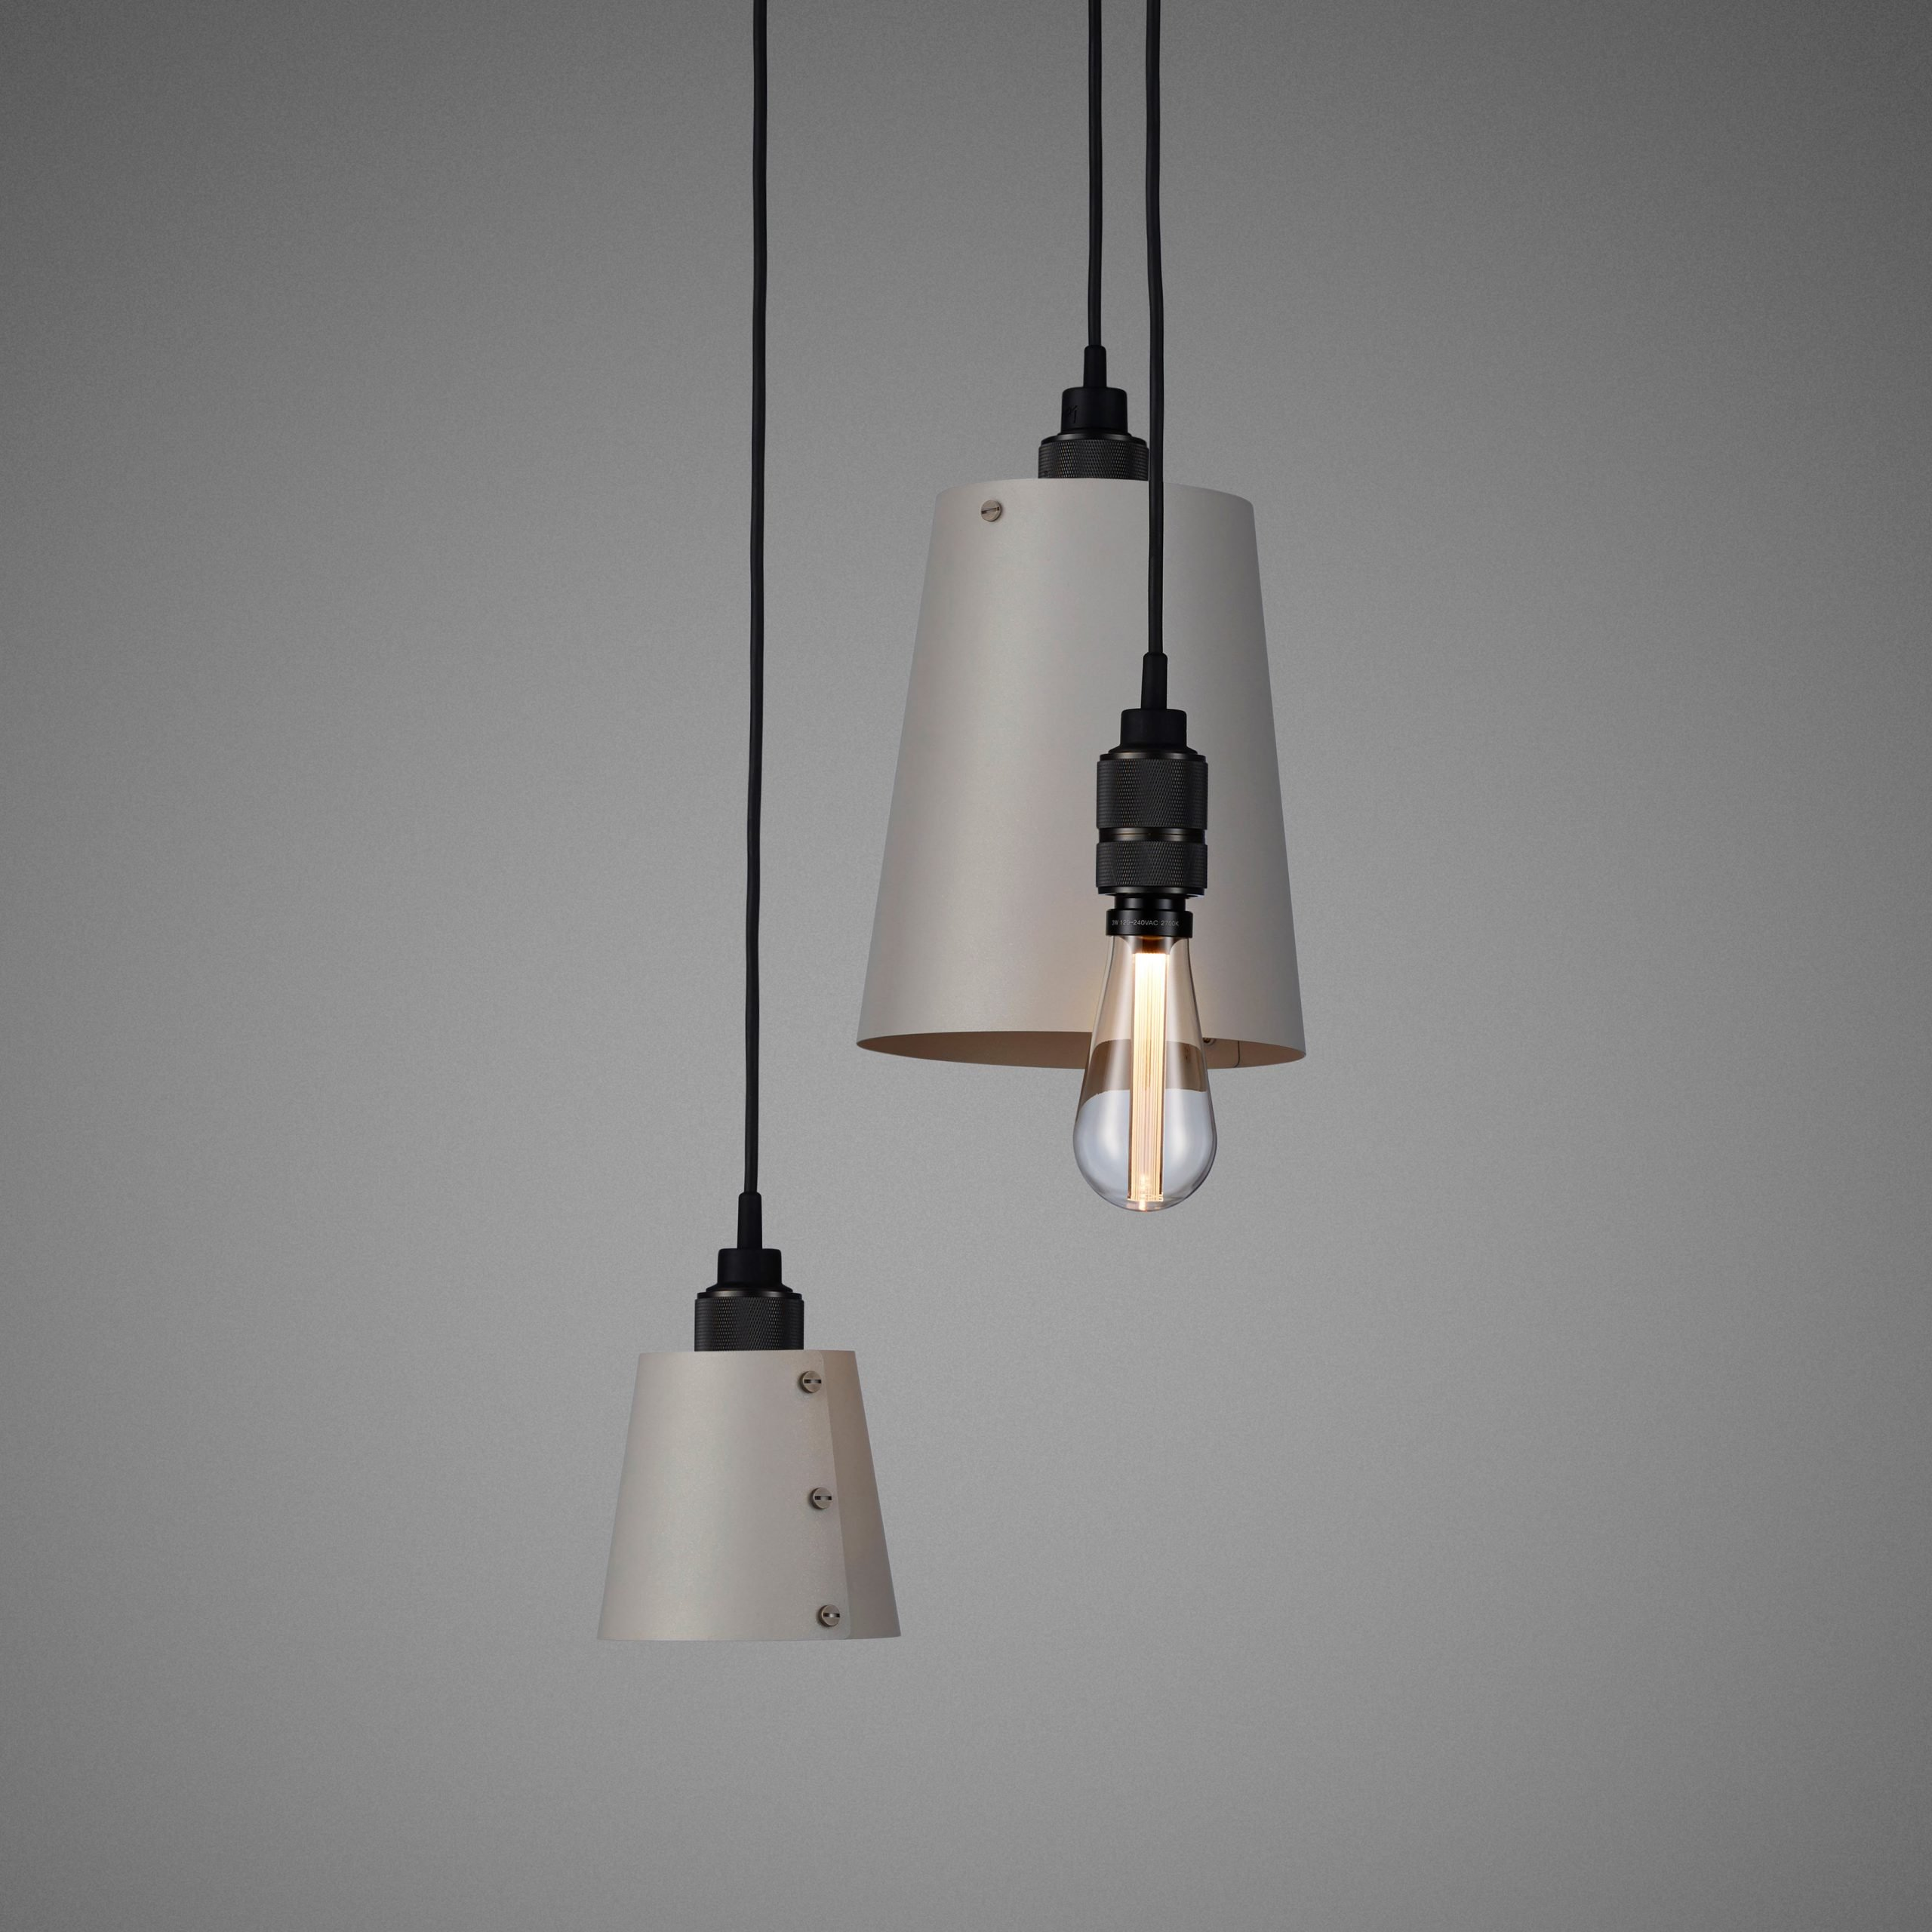 2.Buster+Punch_Hooked_3.0_Mix_Stone_Smoked_Bronze_Crystal_Bulb_2